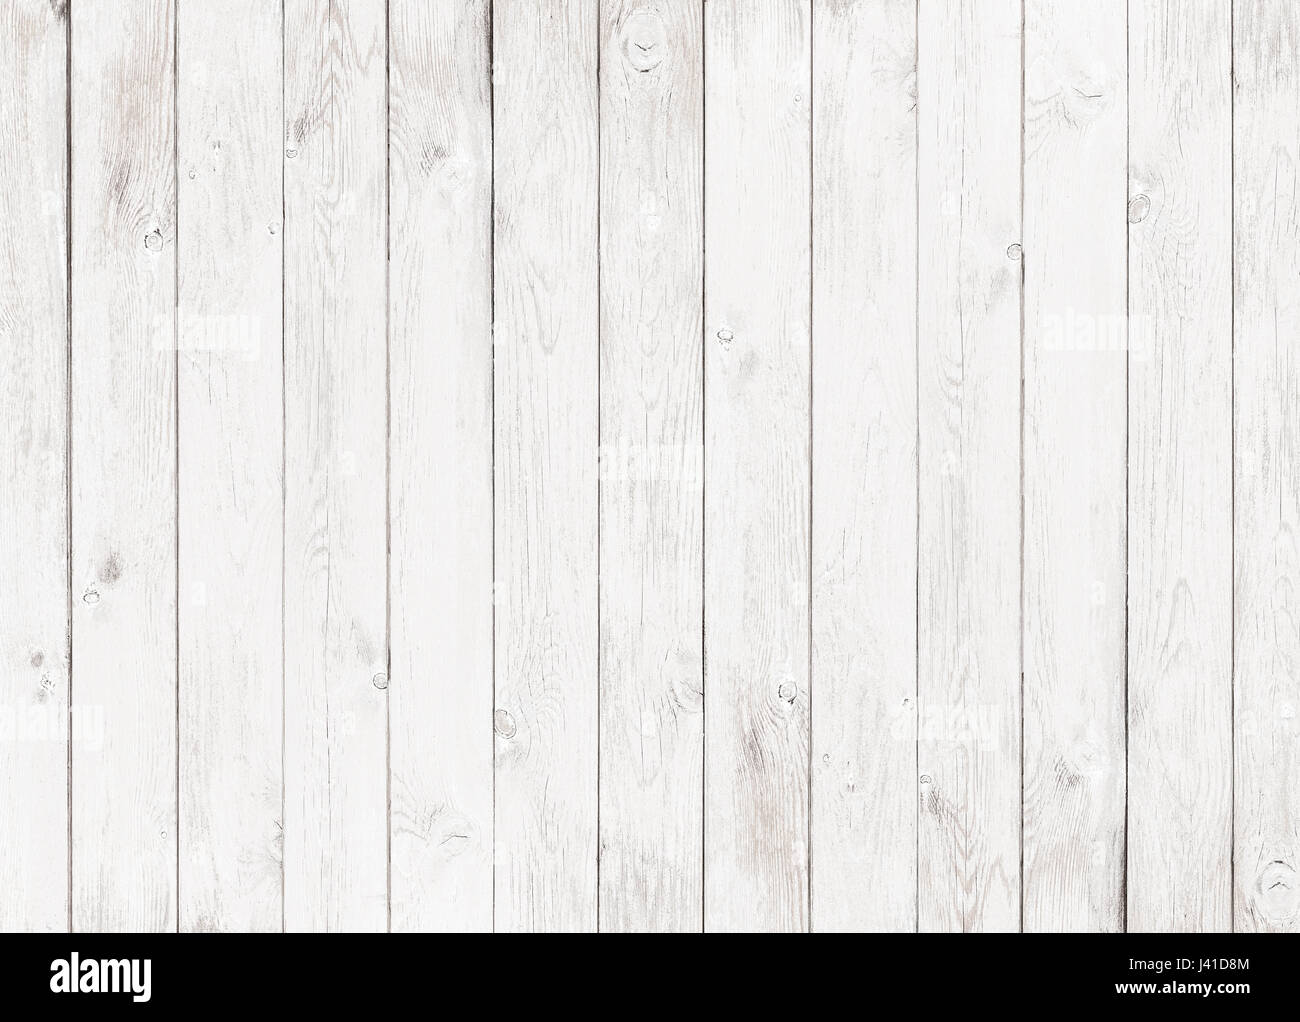 white wood textured background - Stock Image